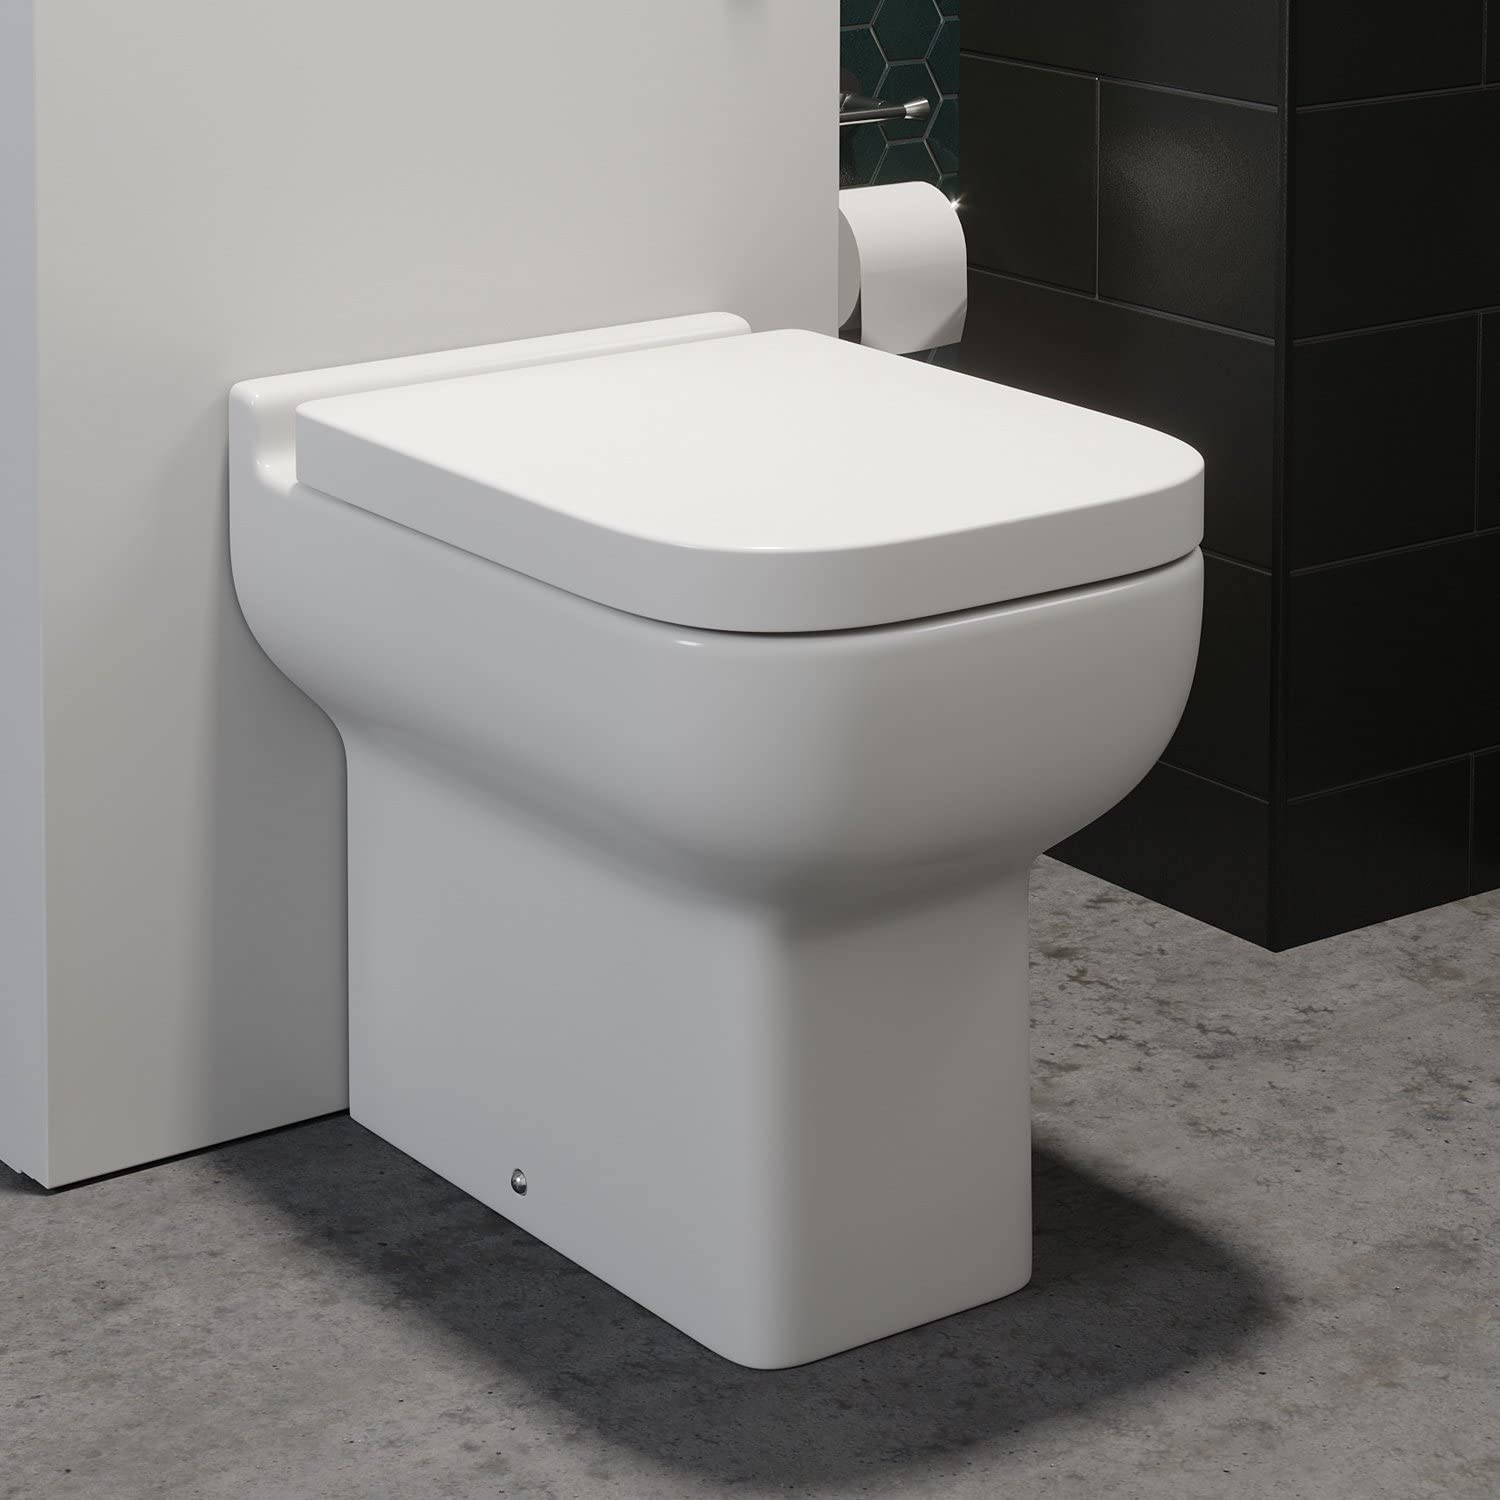 Modern Back to Wall Toilet BTW Pan Bathroom WC Curved Soft Close Top Mounted Seat Ceramic White